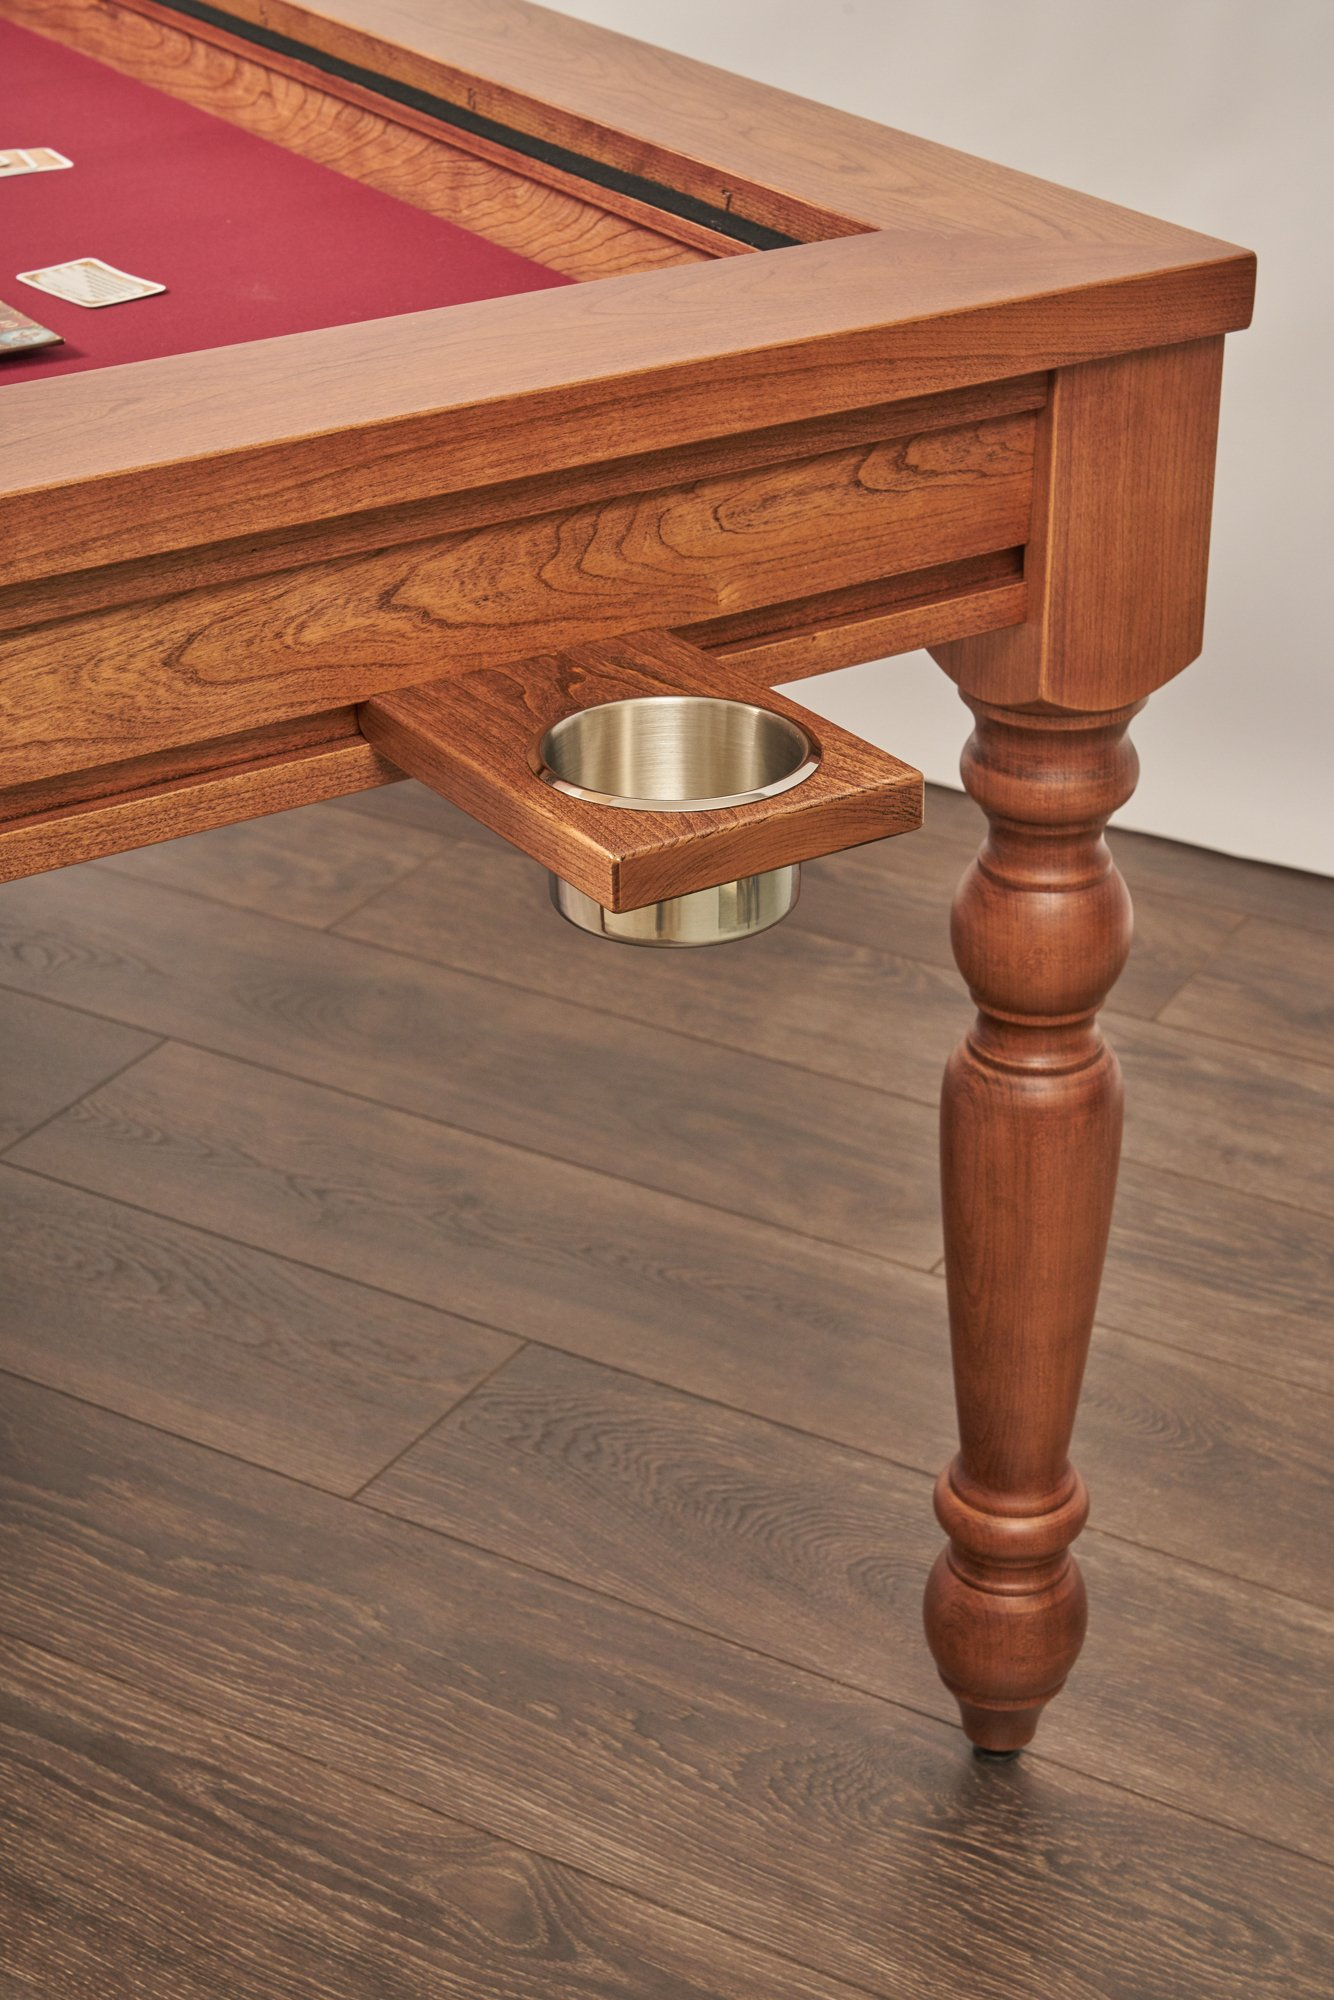 Uniquely Geek custom gaming table natural farmhouse style legs with cupholder staged